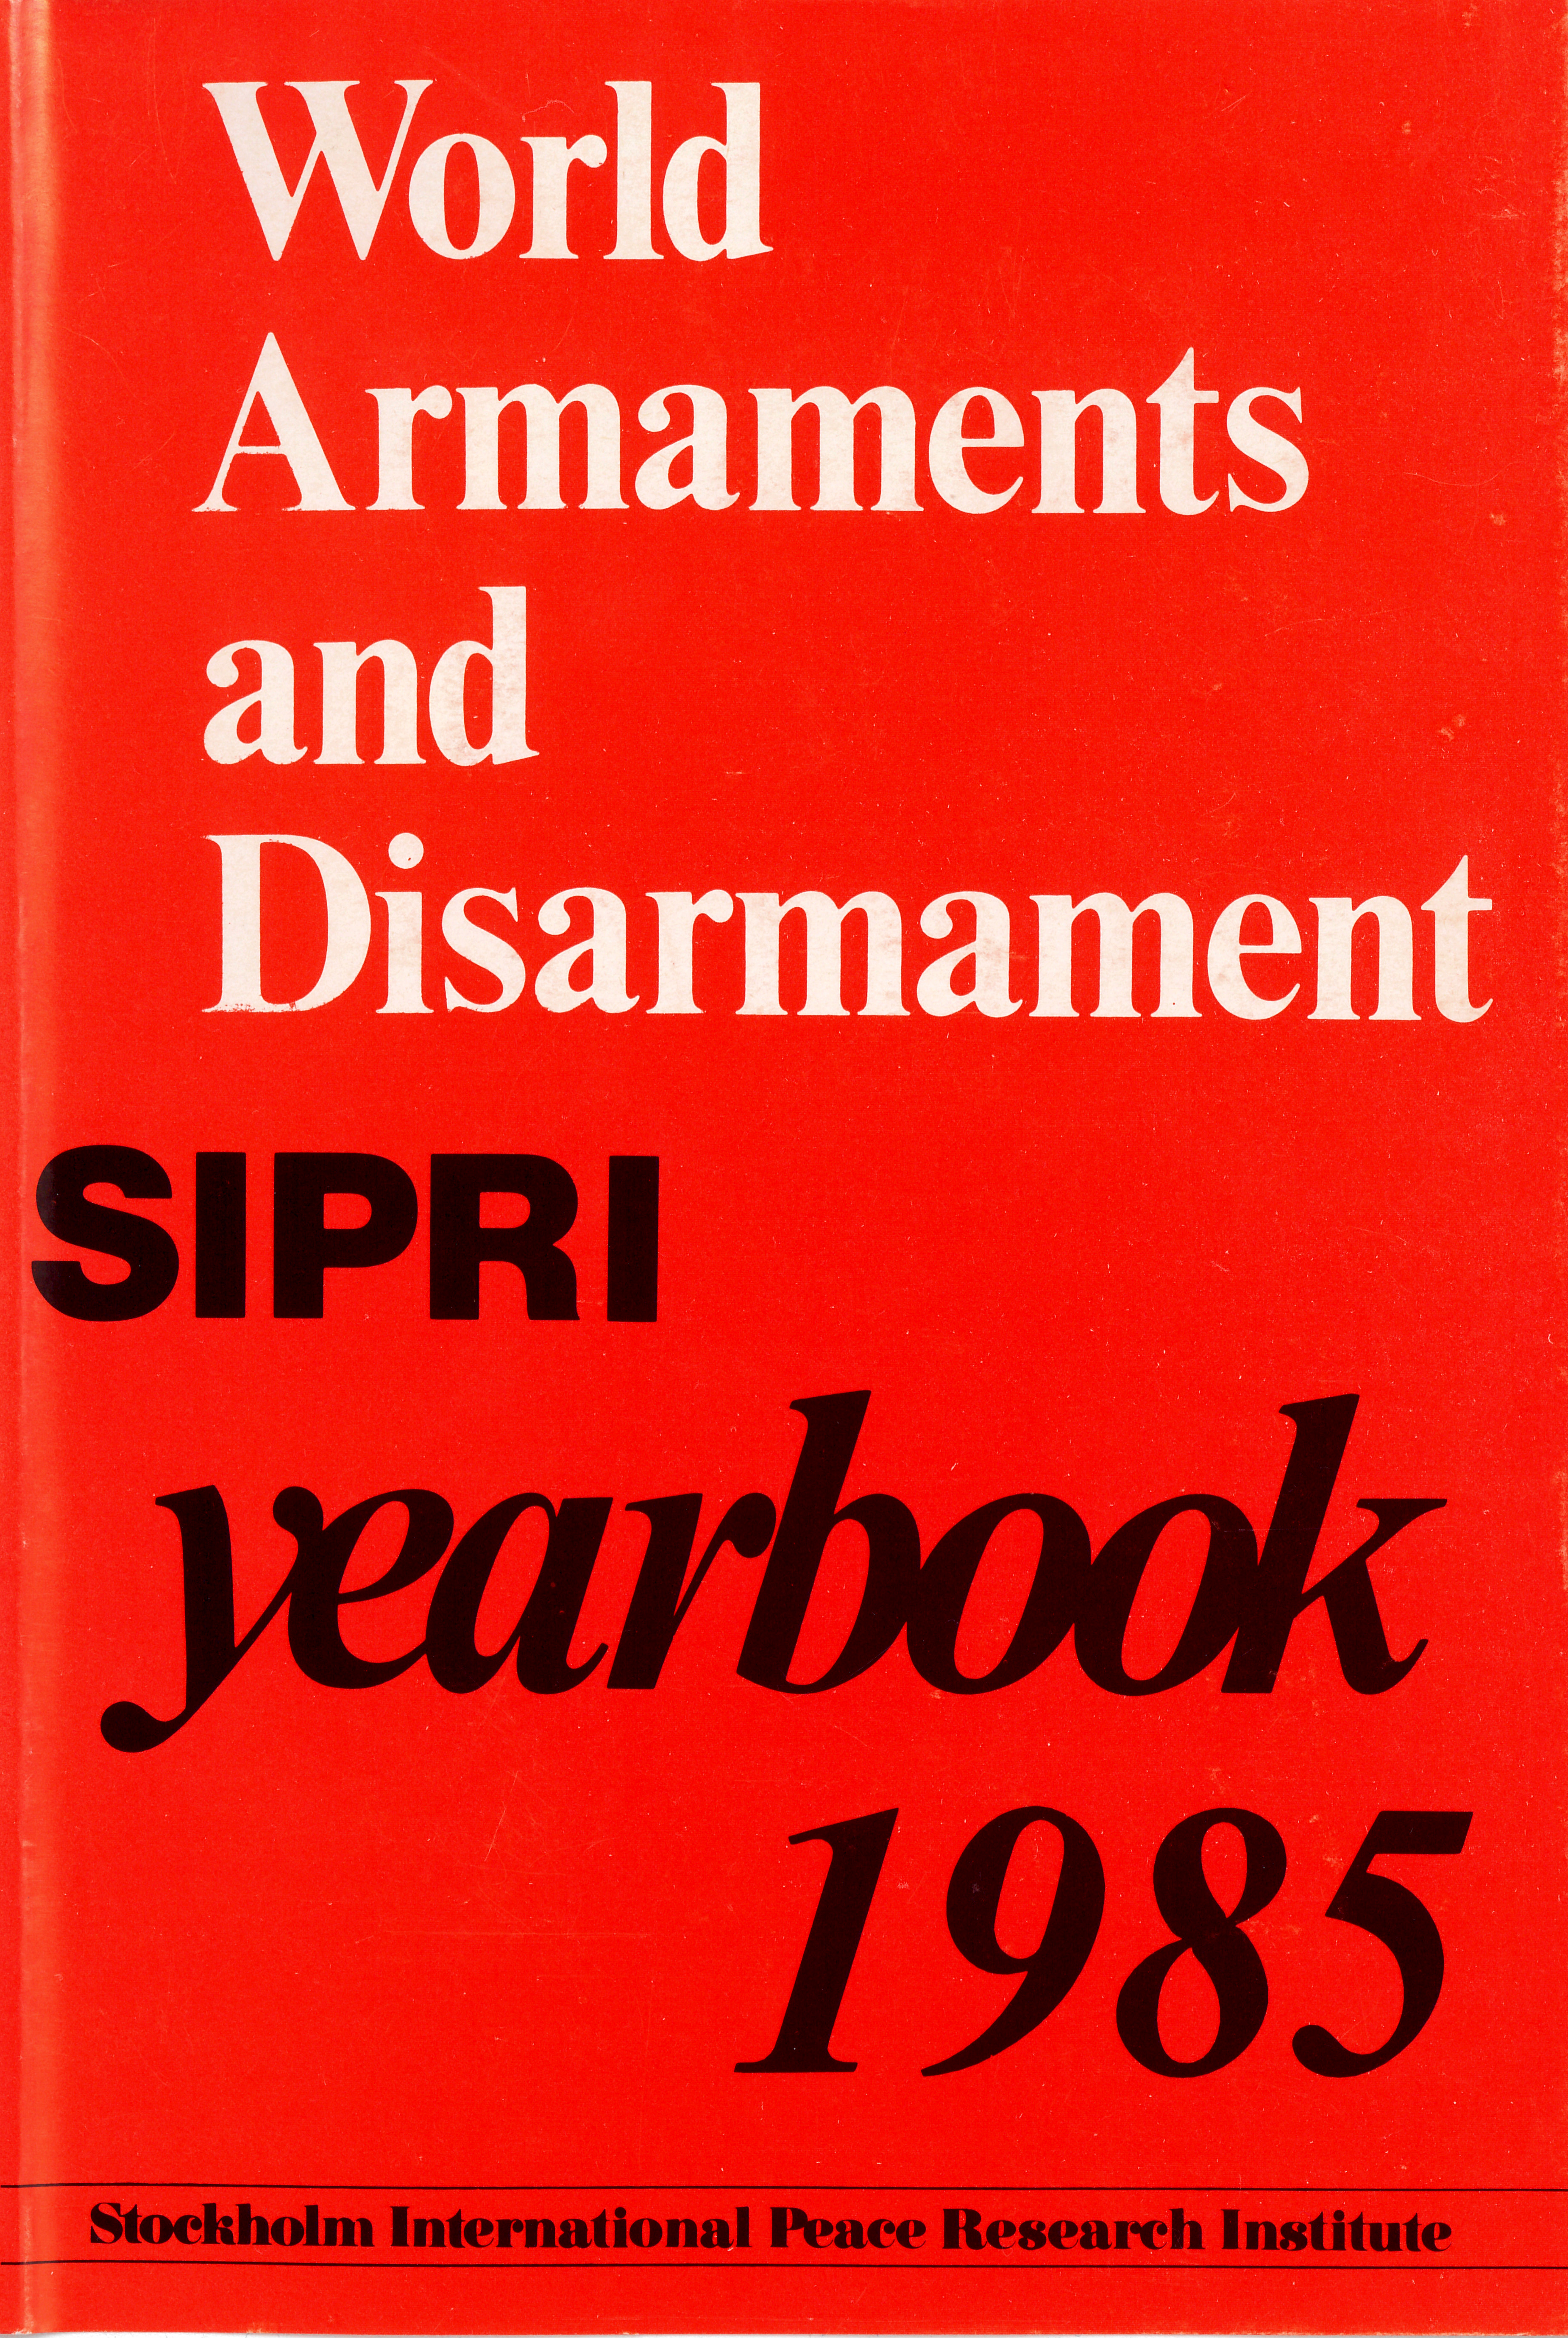 sIPRI yearbook 1985 cover